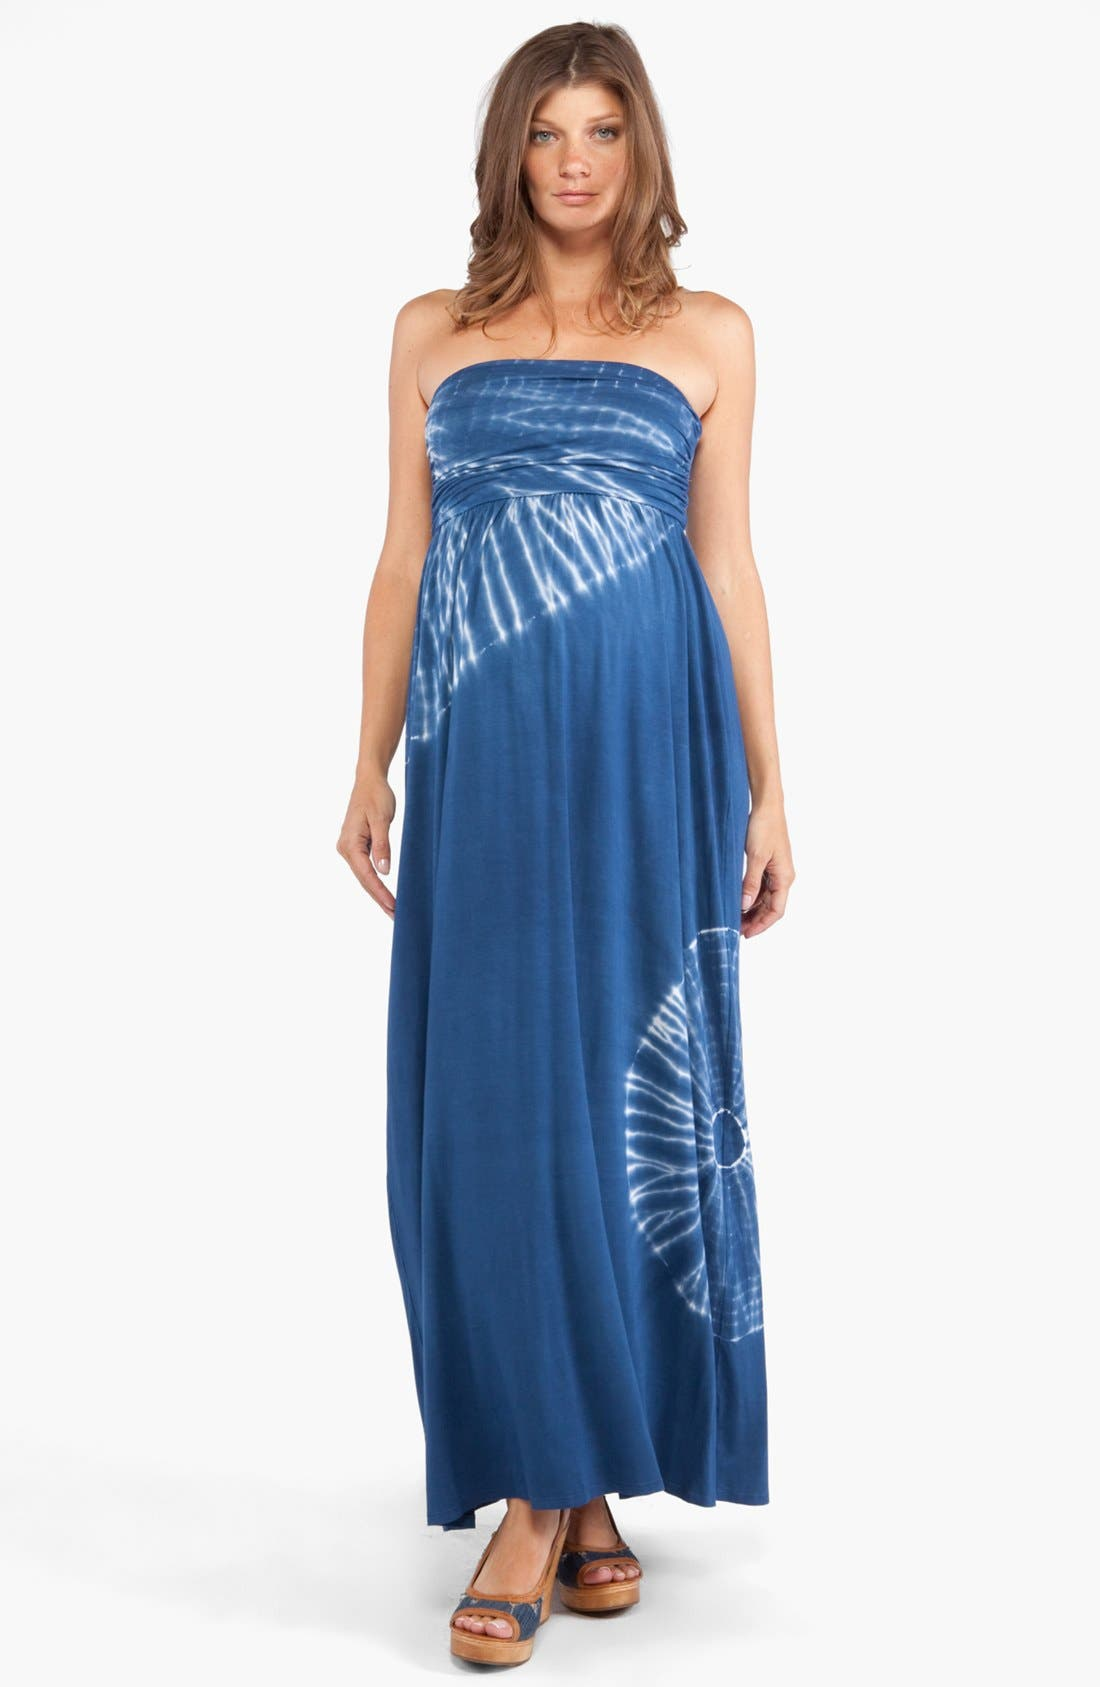 Main Image - Nom Maternity 'Aurora' Tie Dye Maternity Maxi Dress